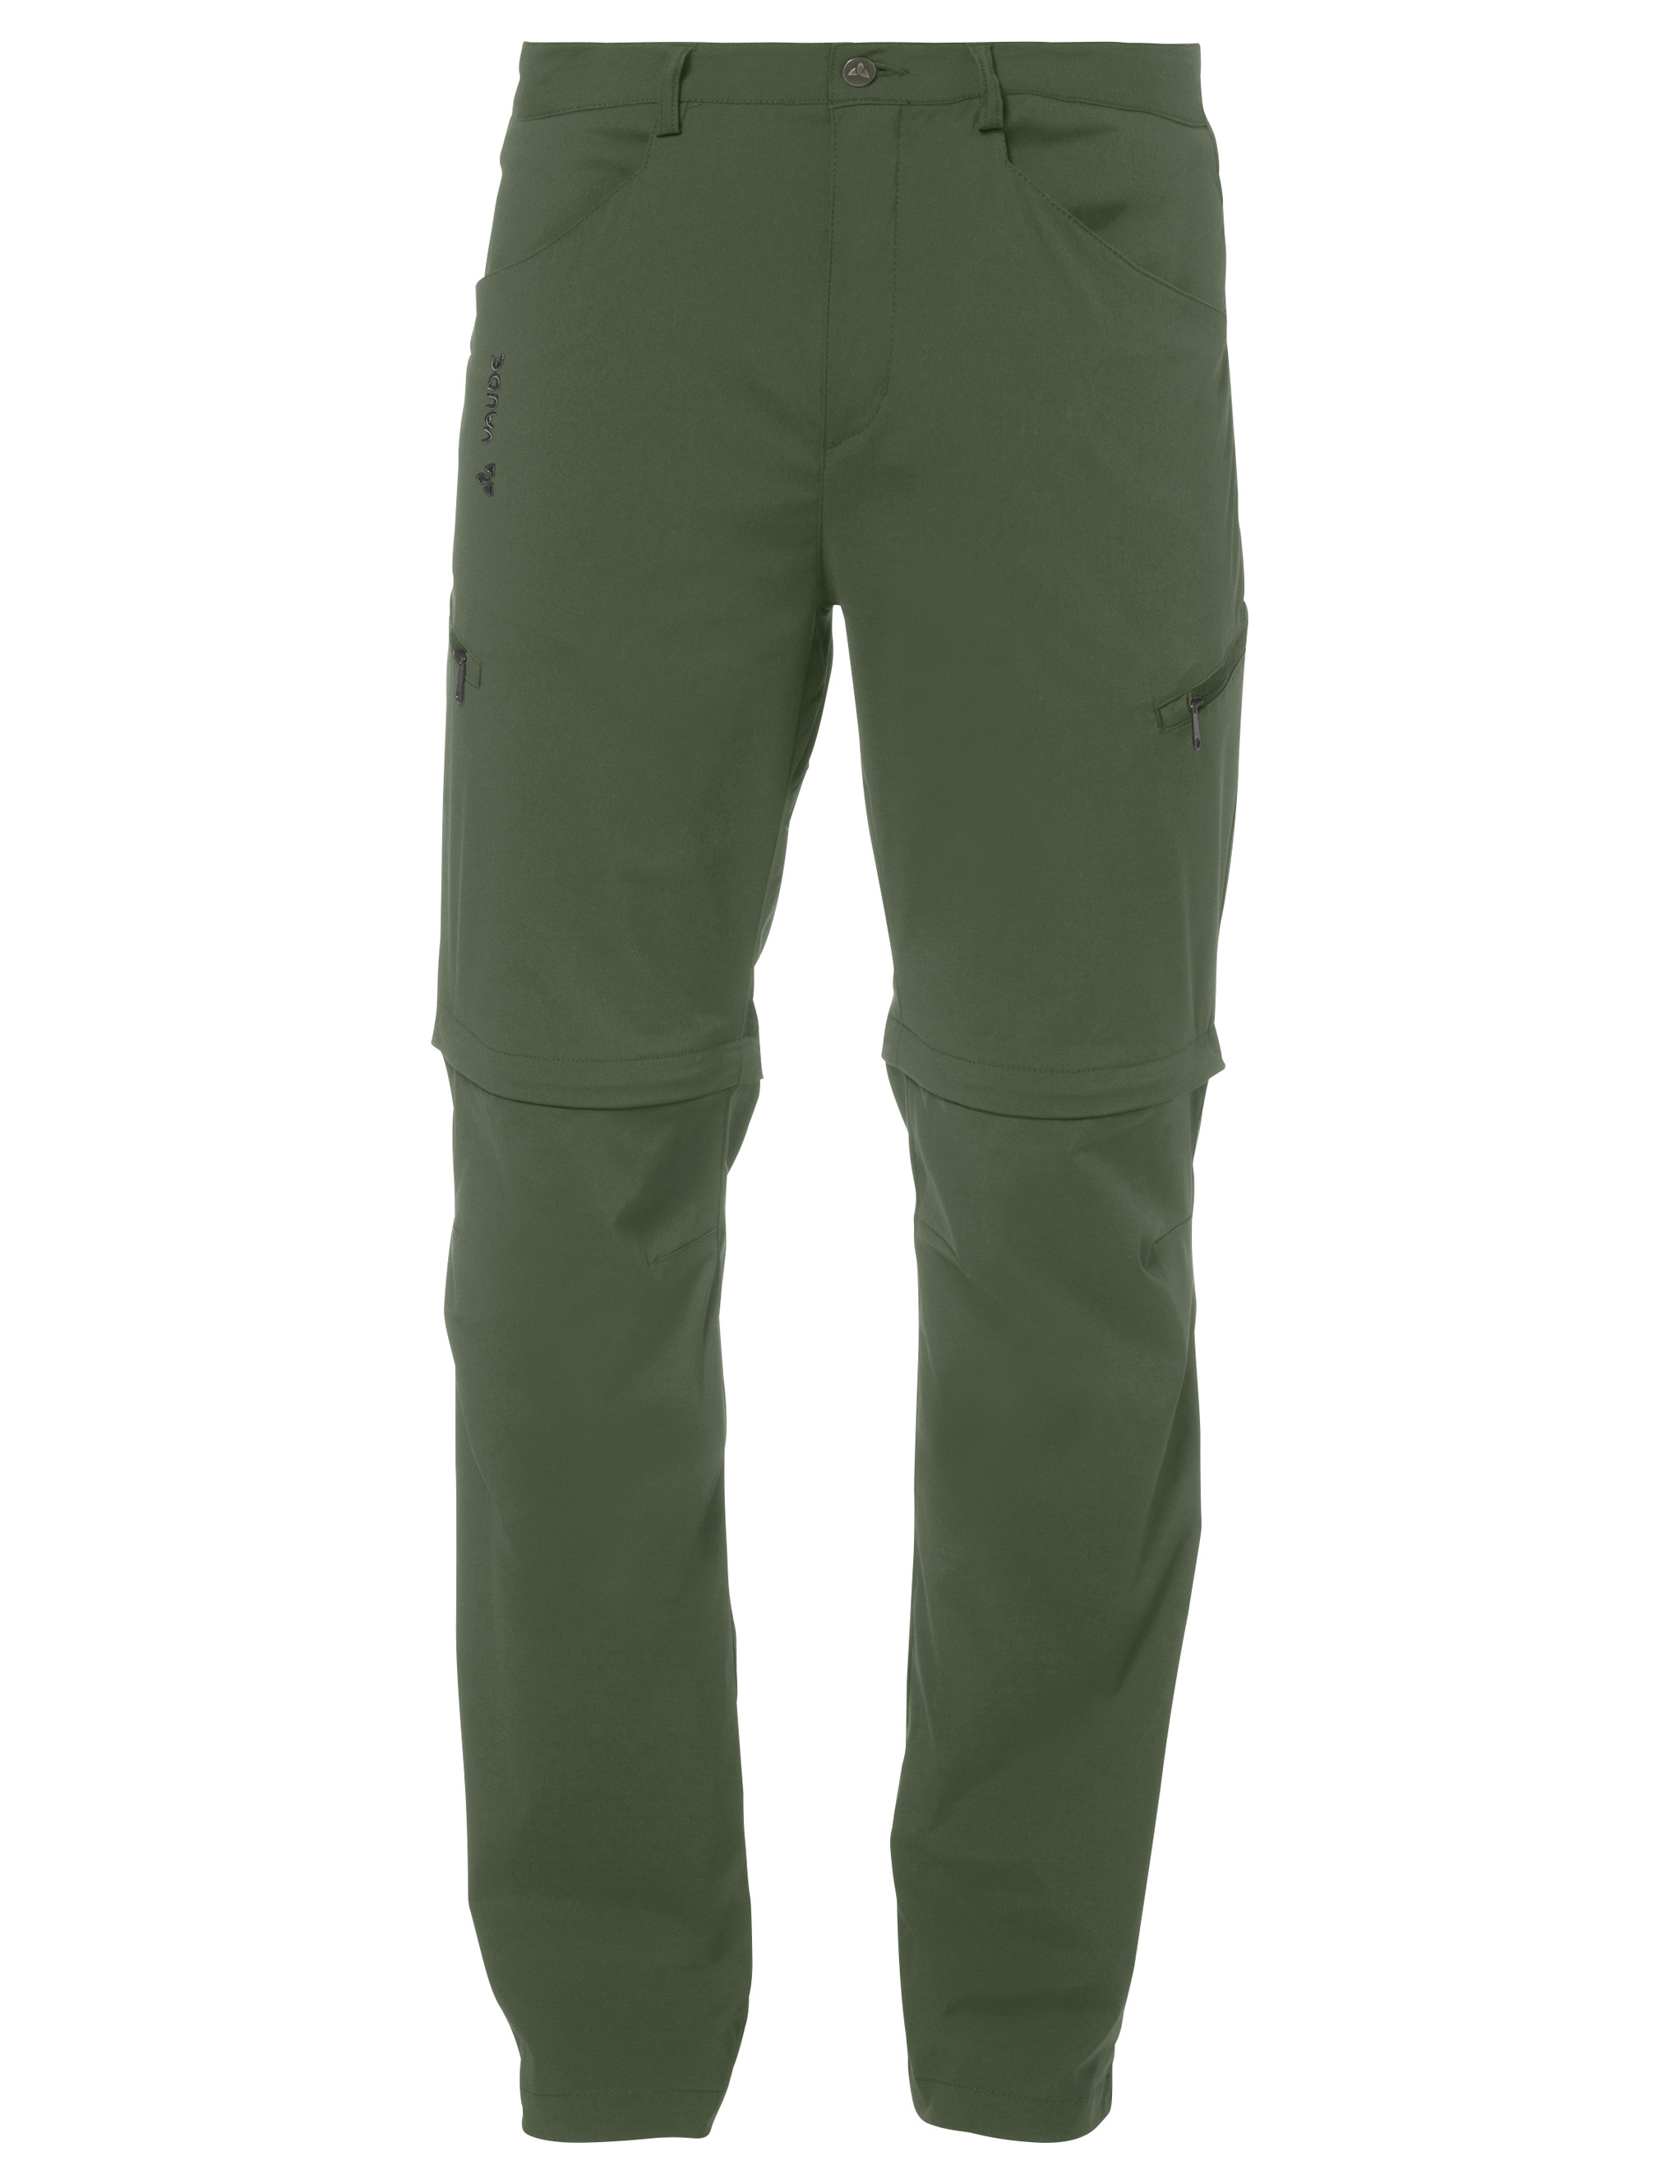 VAUDE Men´s Yaki ZO Pants cedar wood Größe L - schneider-sports